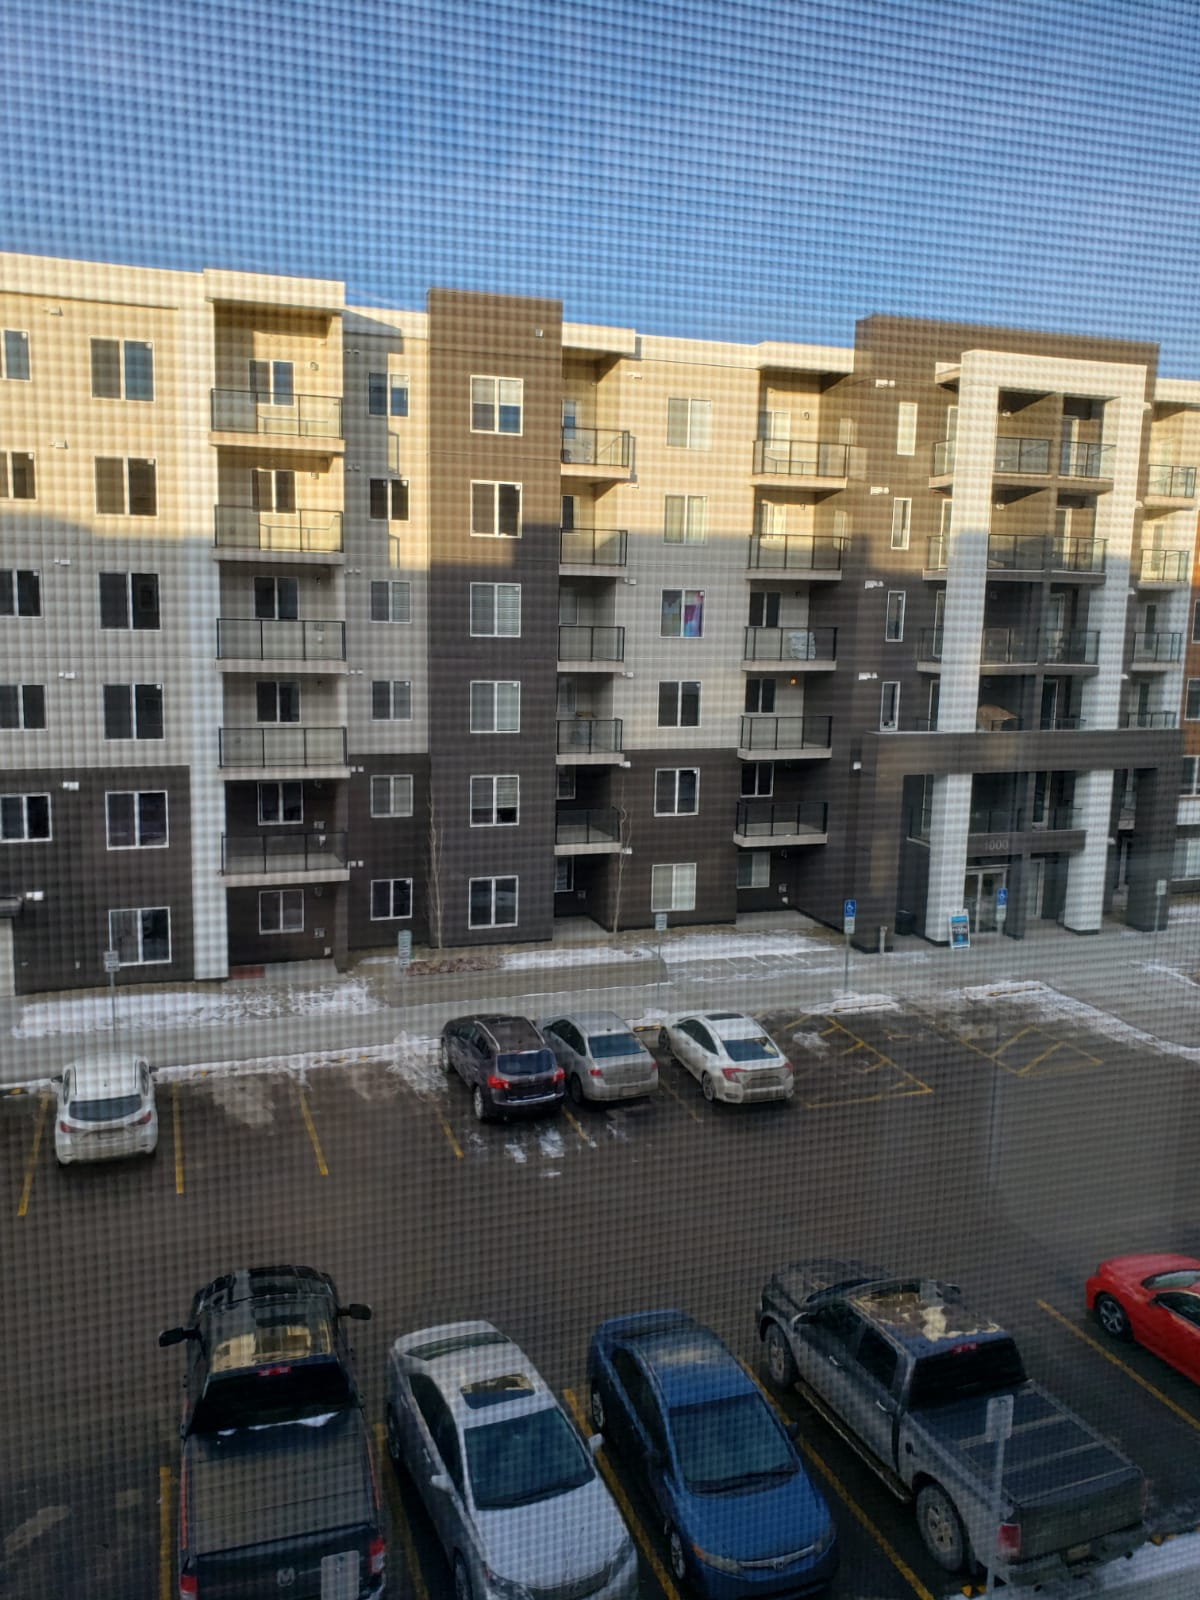 BRAND NEW! 2 BDRMS PLUS DEN, 2 BATH, 3RD FLOOR APARTMENT IN SKYVIEW!